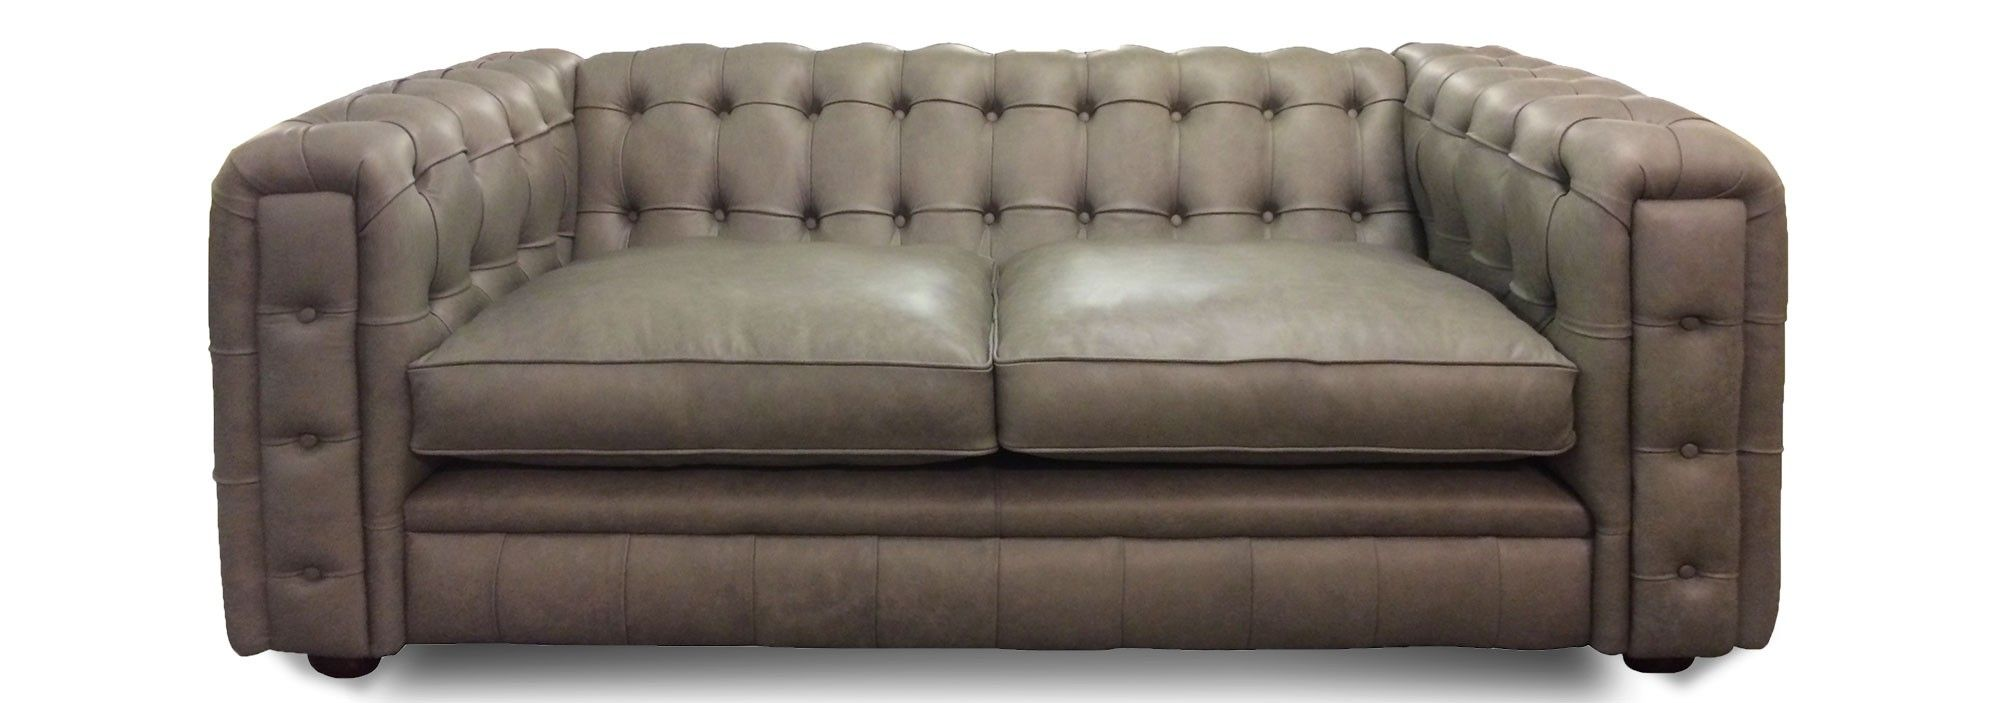 Ecksofa Etna Trafalgar Chesterfield Sofa Meubel Chesterfield Sofa Sofa